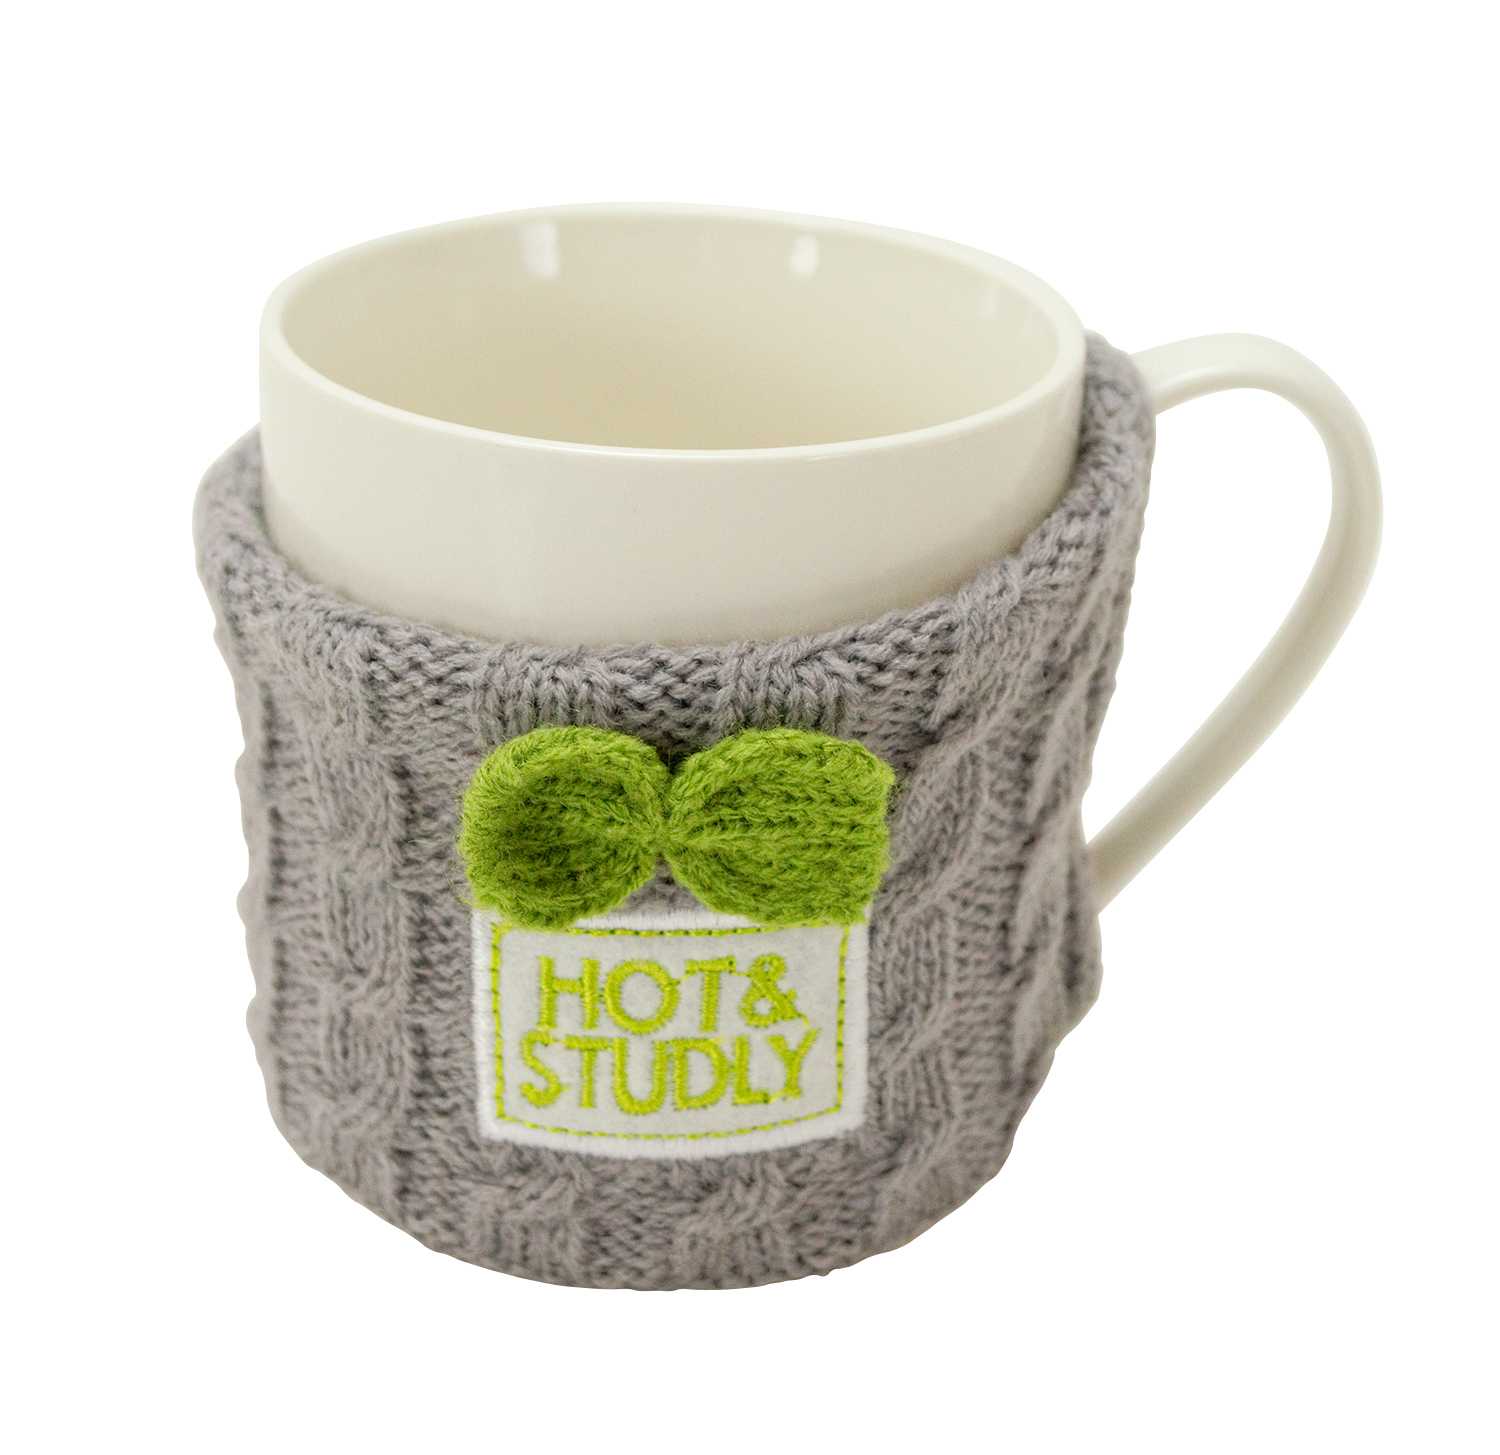 Кружки Кружка в свитере Boston Warehouse Sweater mug Hot & Studly kruzhka-v-svitere-boston-warehouse-sweater-mug-hot-studly-ssha.jpg